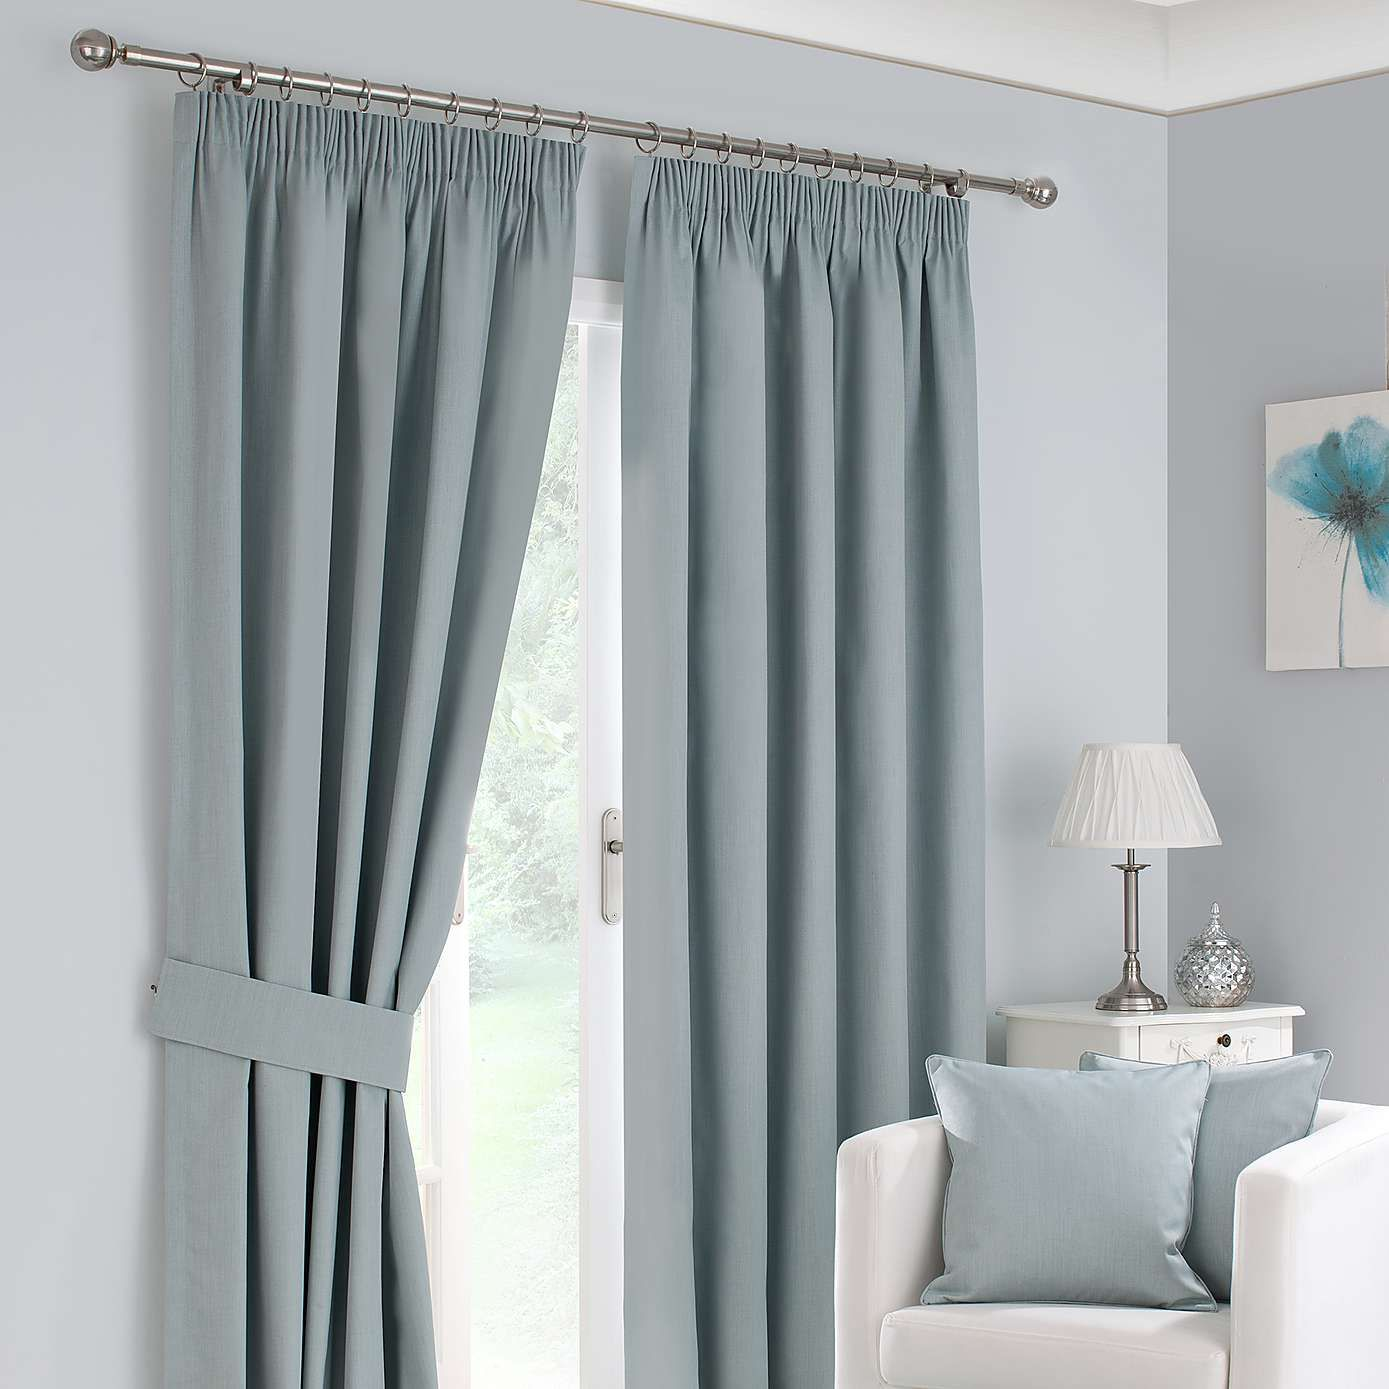 Slot top voile pair olive cheap green curtain voile uk delivery - The 25 Best Minimalist Pencil Pleat Curtains Ideas On Pinterest Syudy Island Classic Style Multicoloured Bathrooms And Ply Vaneer Doors